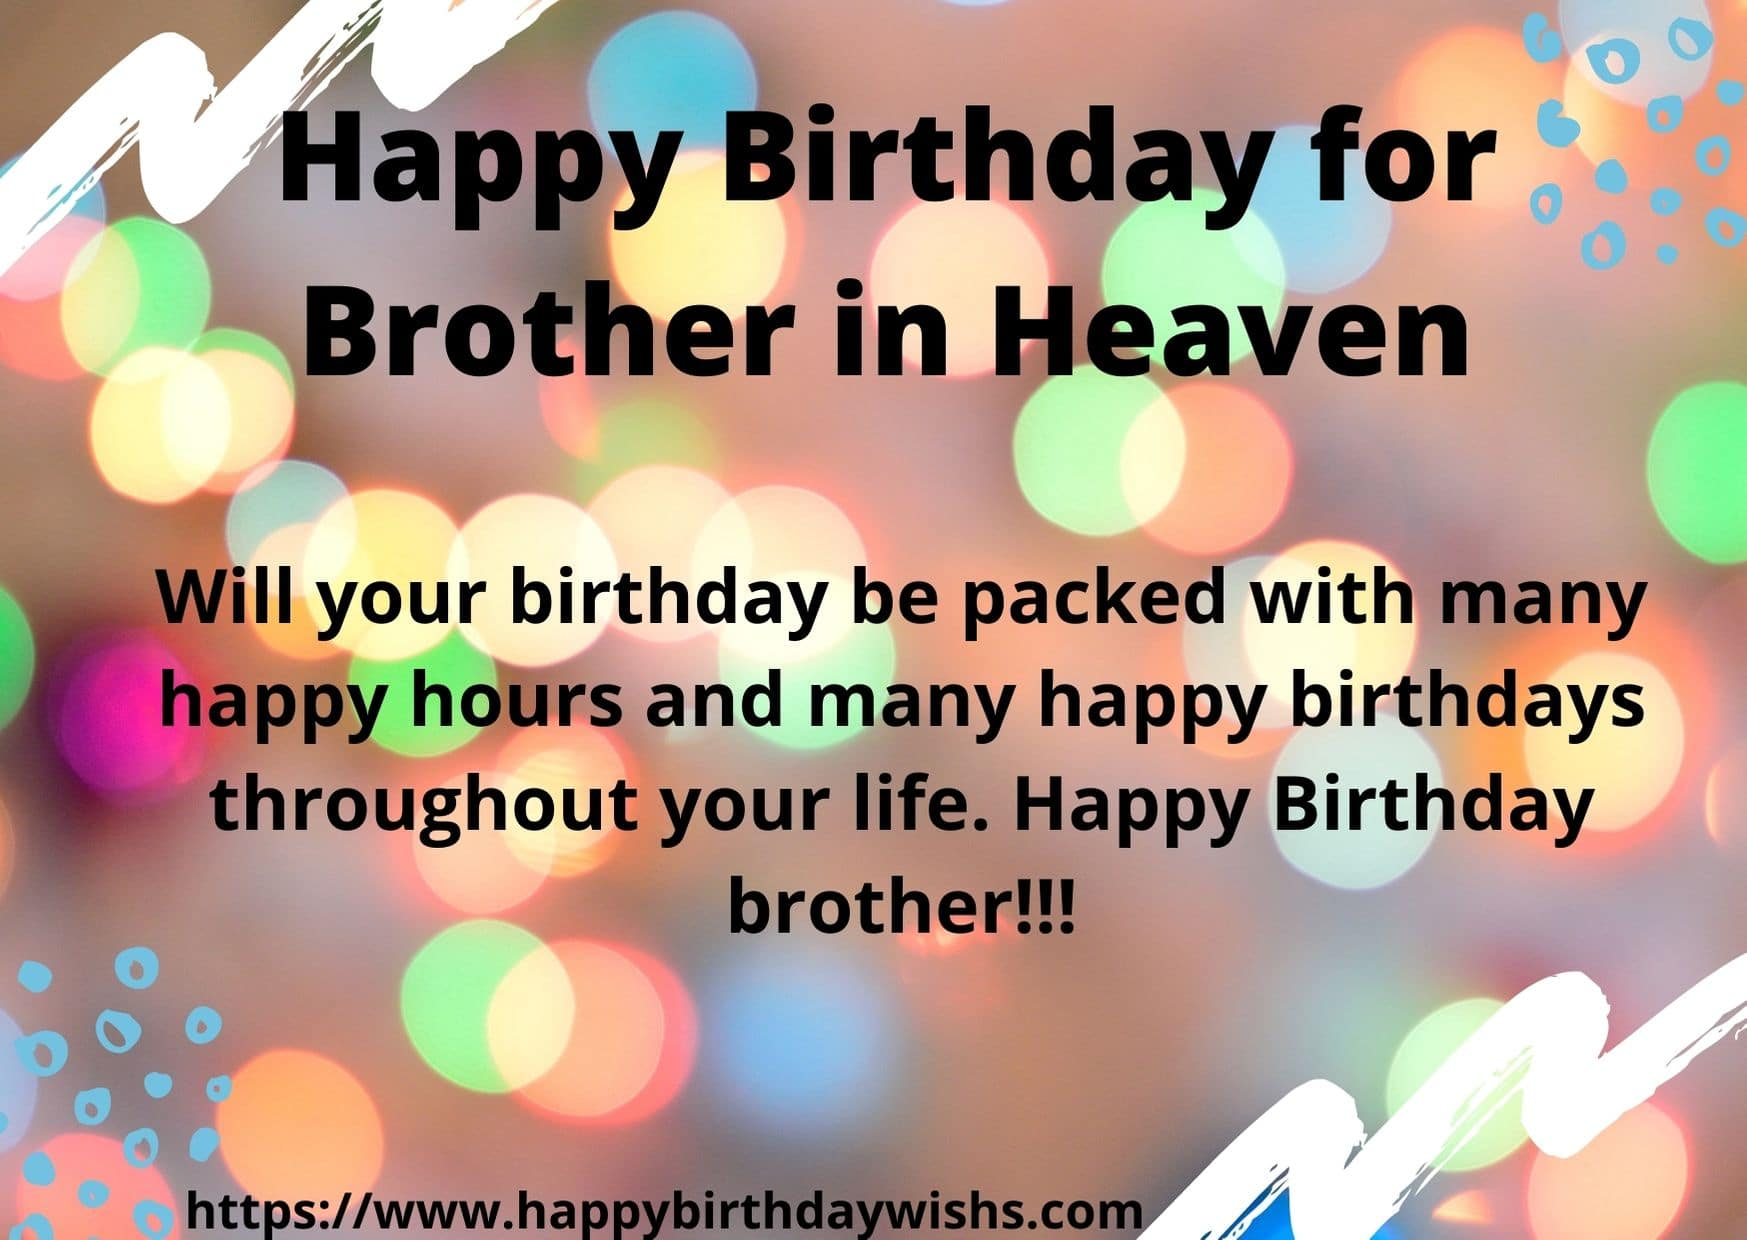 100 Happy Birthday Wishes In Heaven Brother Happy Birthday Wishes